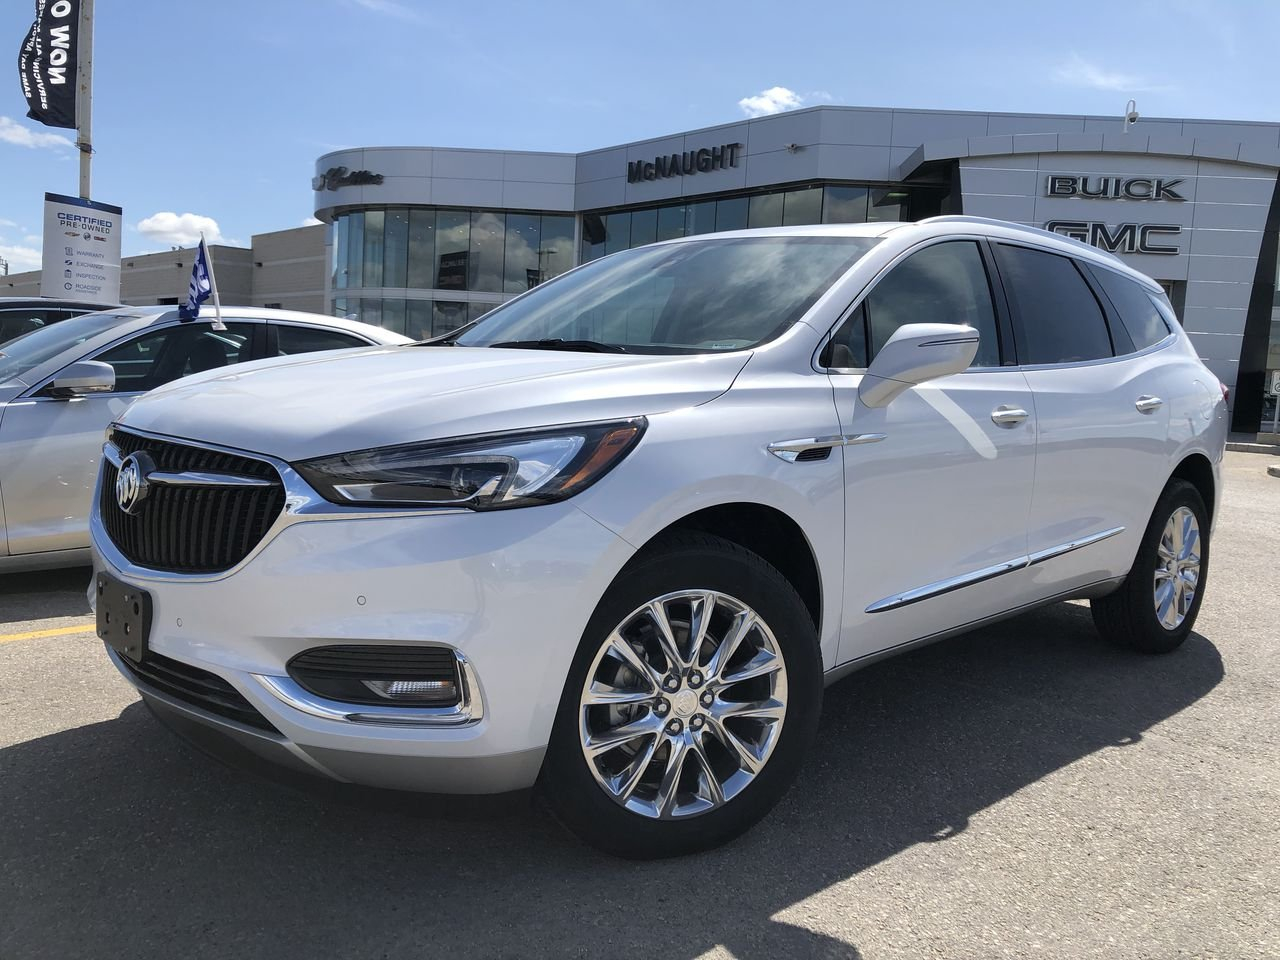 New 2020 Buick Enclave Premium 2022 Buick Enclave Length, Leather, Lease Price